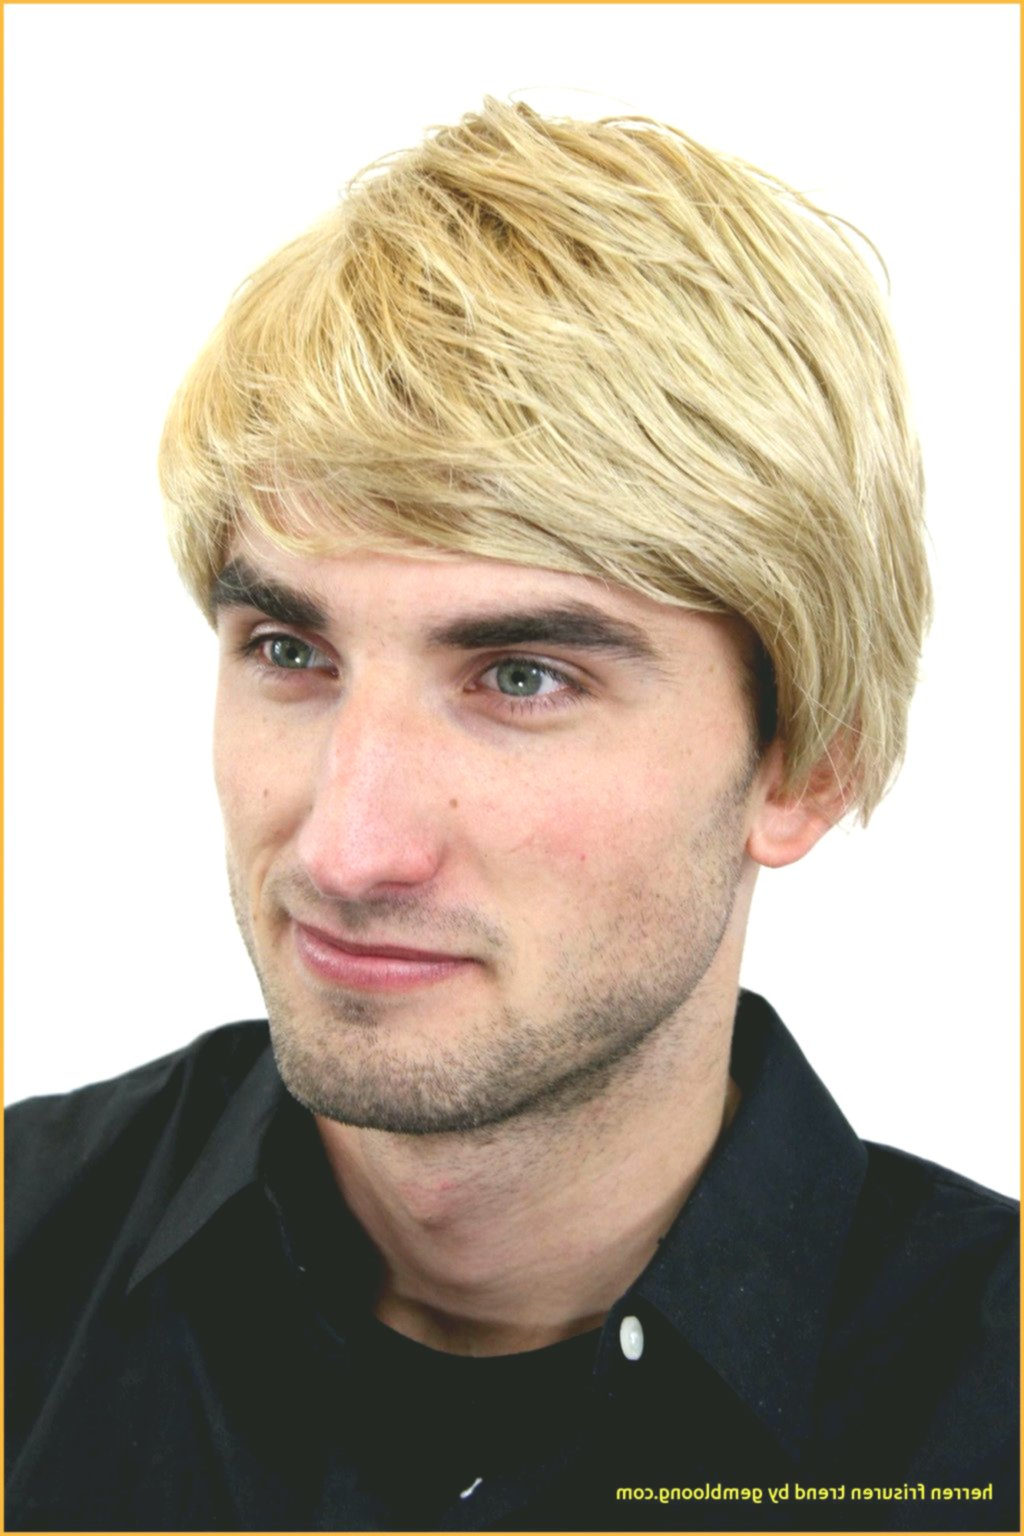 Stylish Men's Short Hairstyle Online Inspirational Men's Hairstyle Short Photography